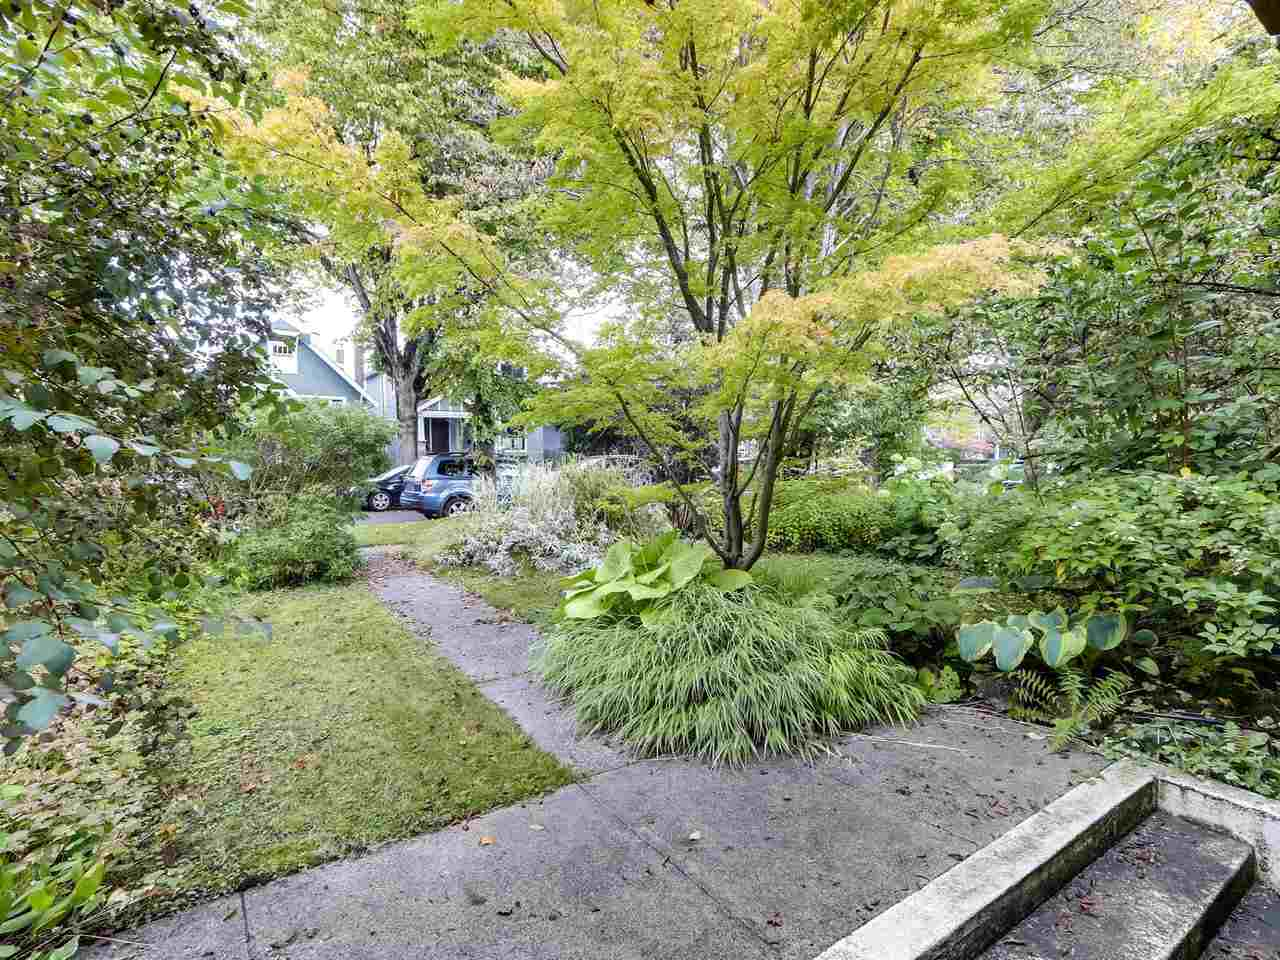 4372 W 13TH AVENUE - Point Grey House/Single Family for sale, 4 Bedrooms (R2508858) - #4